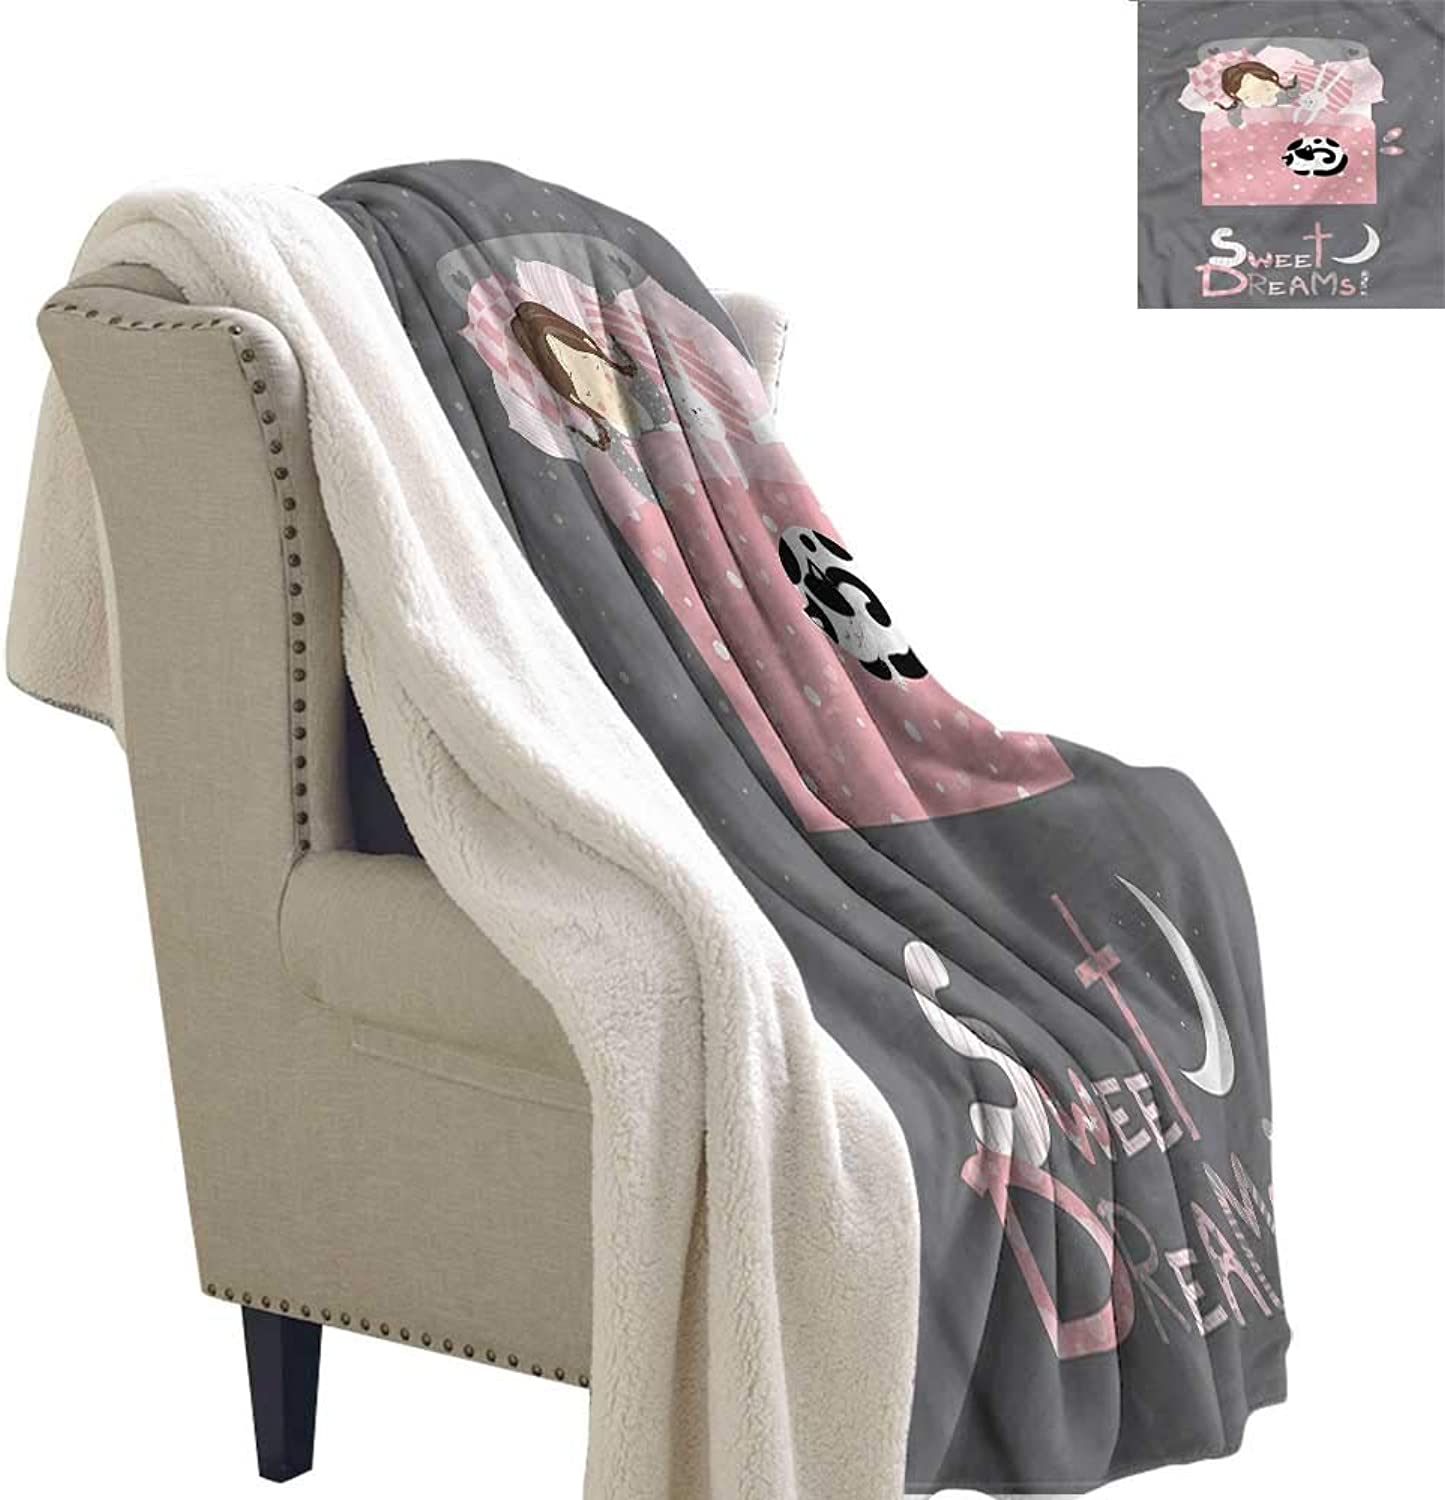 AndyTours Lamb Duvet Sweet Dreams Girl with a Bunny Blanket for Family and Friends W59 x L31